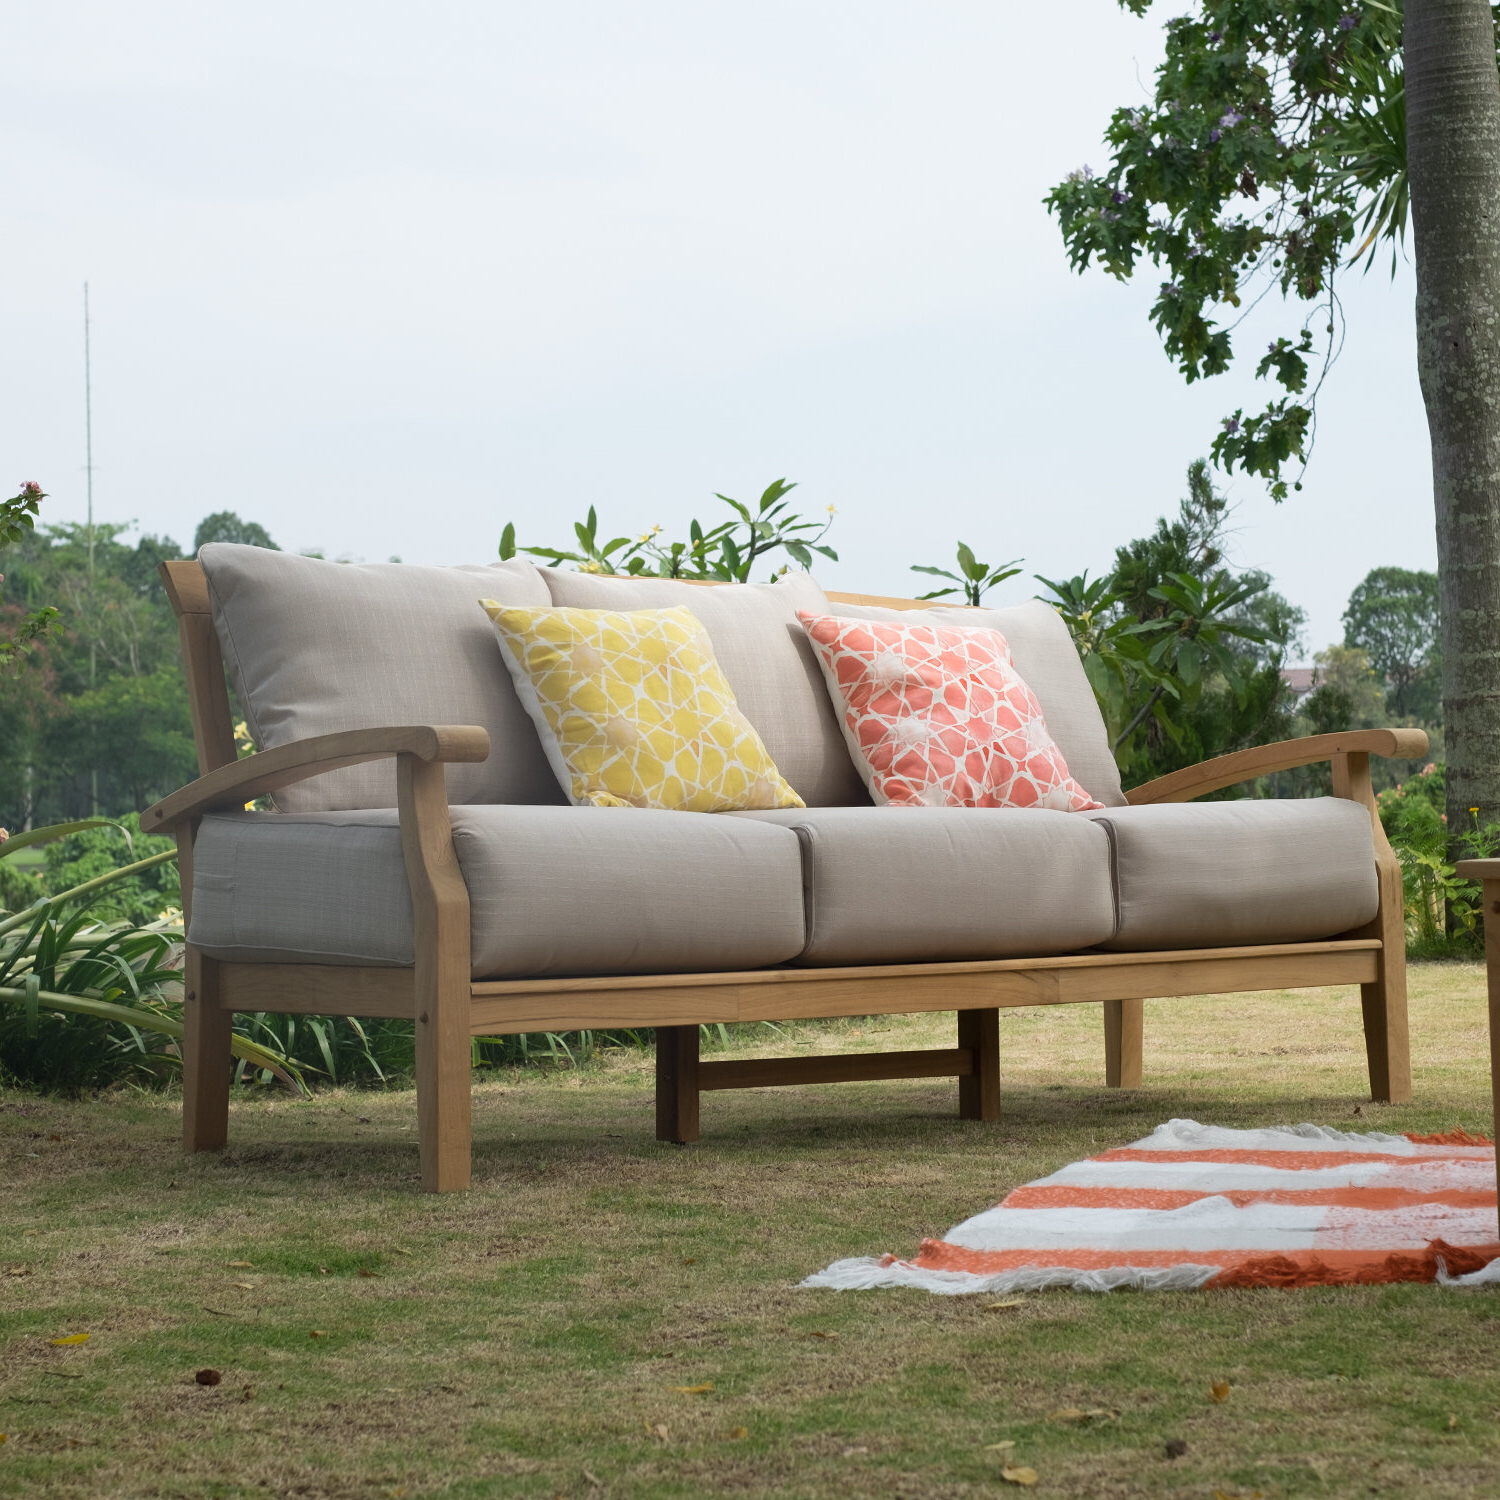 Well Known Summerton Teak Patio Sofa With Cushions Inside Clary Teak Lounge Patio Daybeds With Cushion (View 19 of 20)